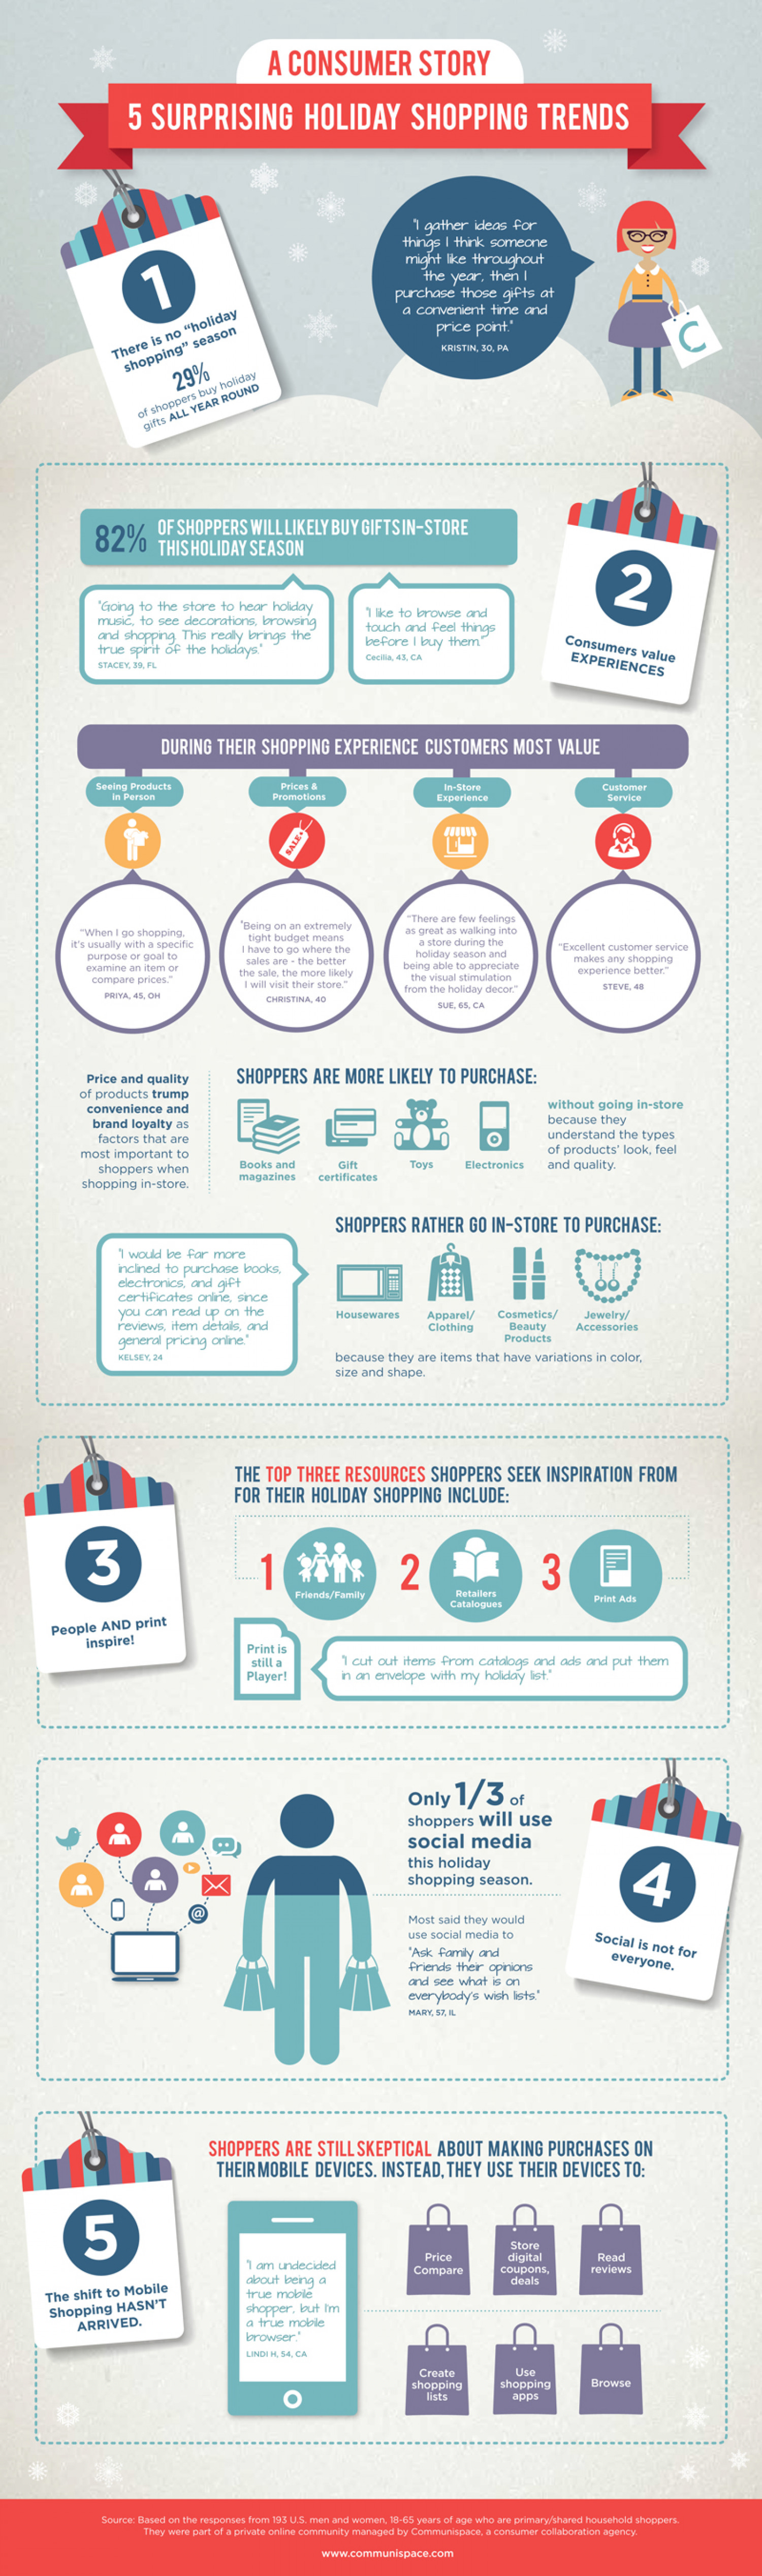 How collaboration revealed 5 surprising holiday shopping trends Infographic